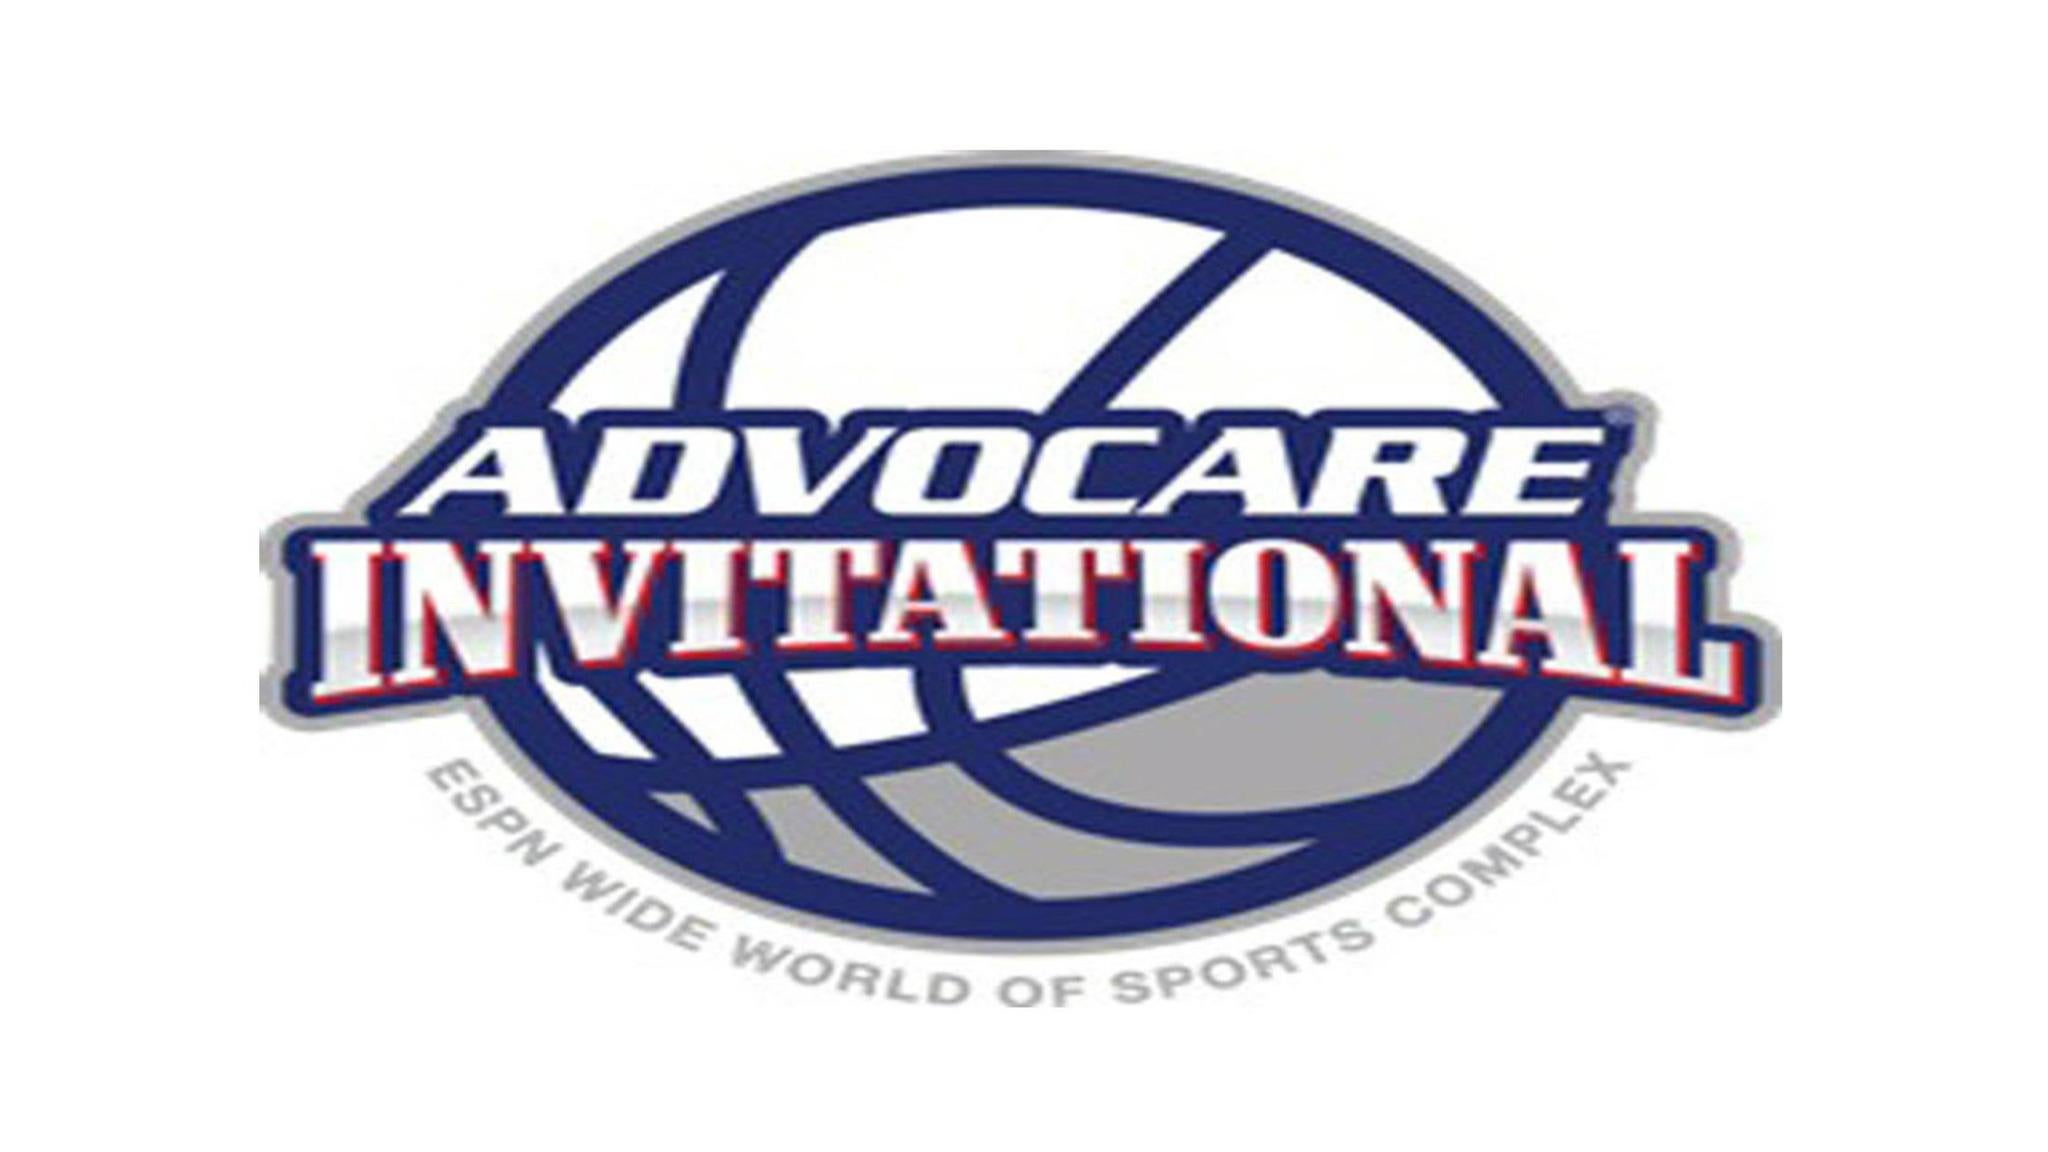 AdvoCare Invitational